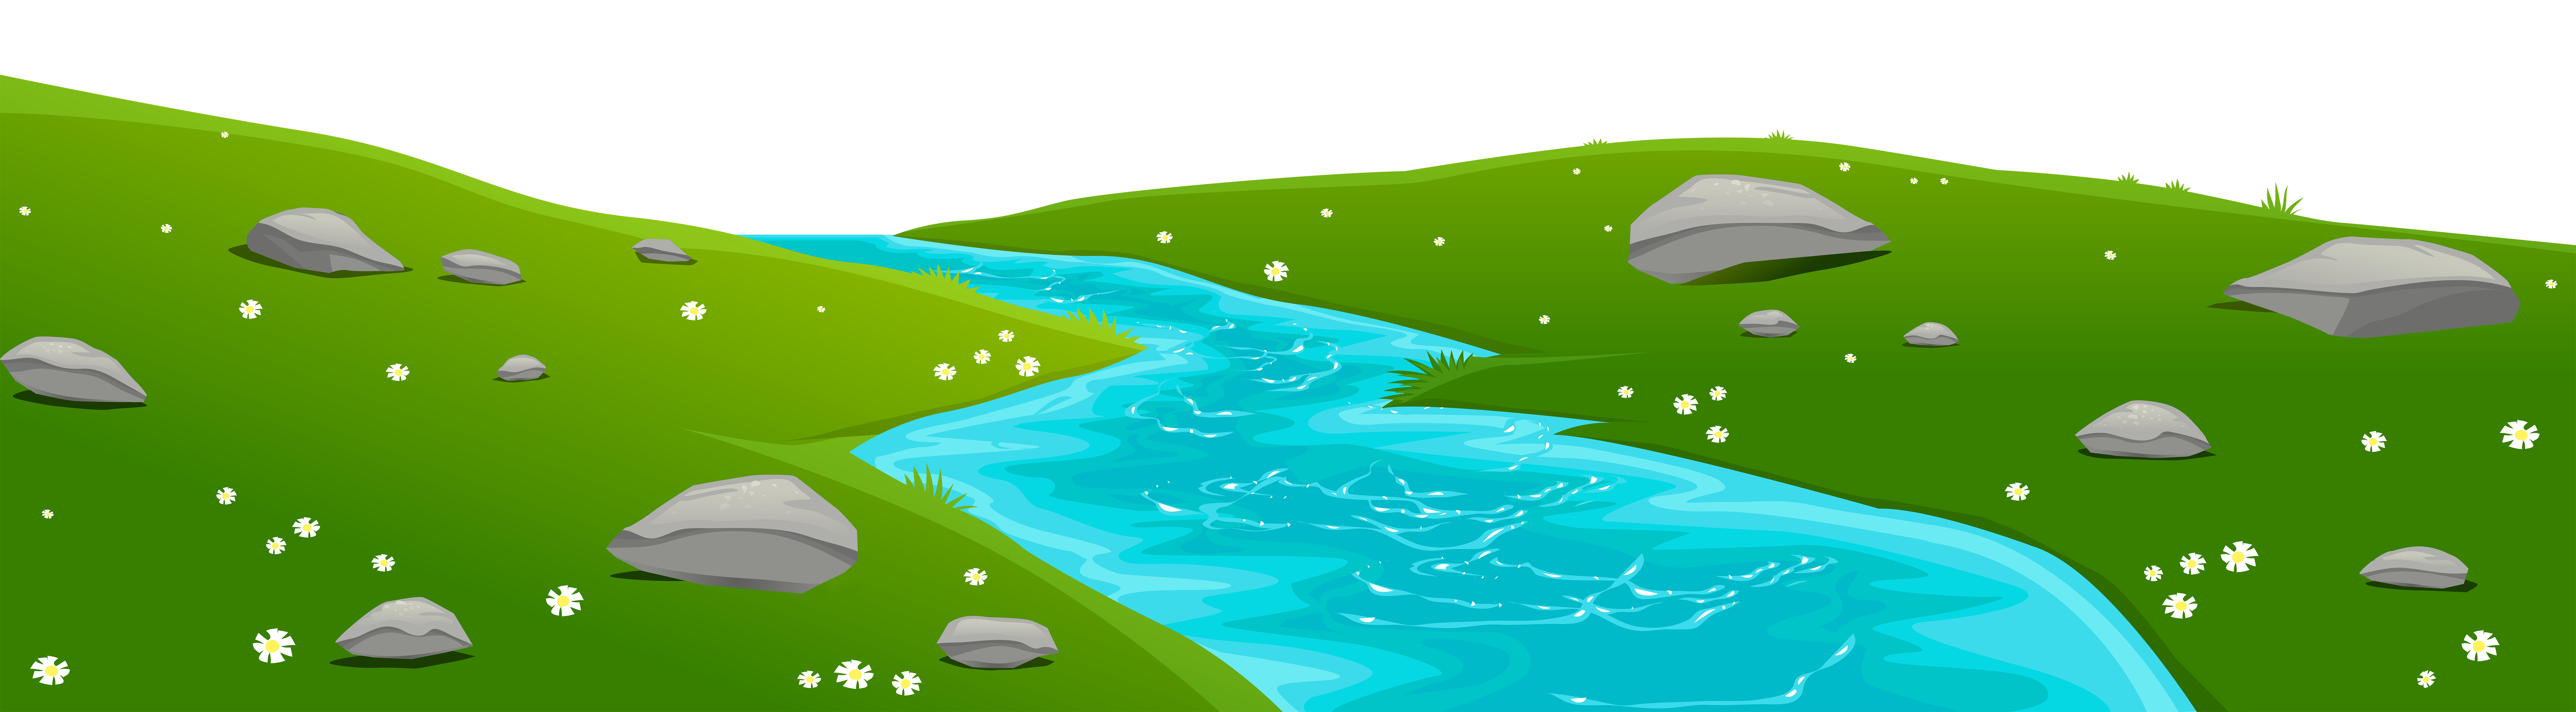 River cover transparent png. Outdoors clipart ground